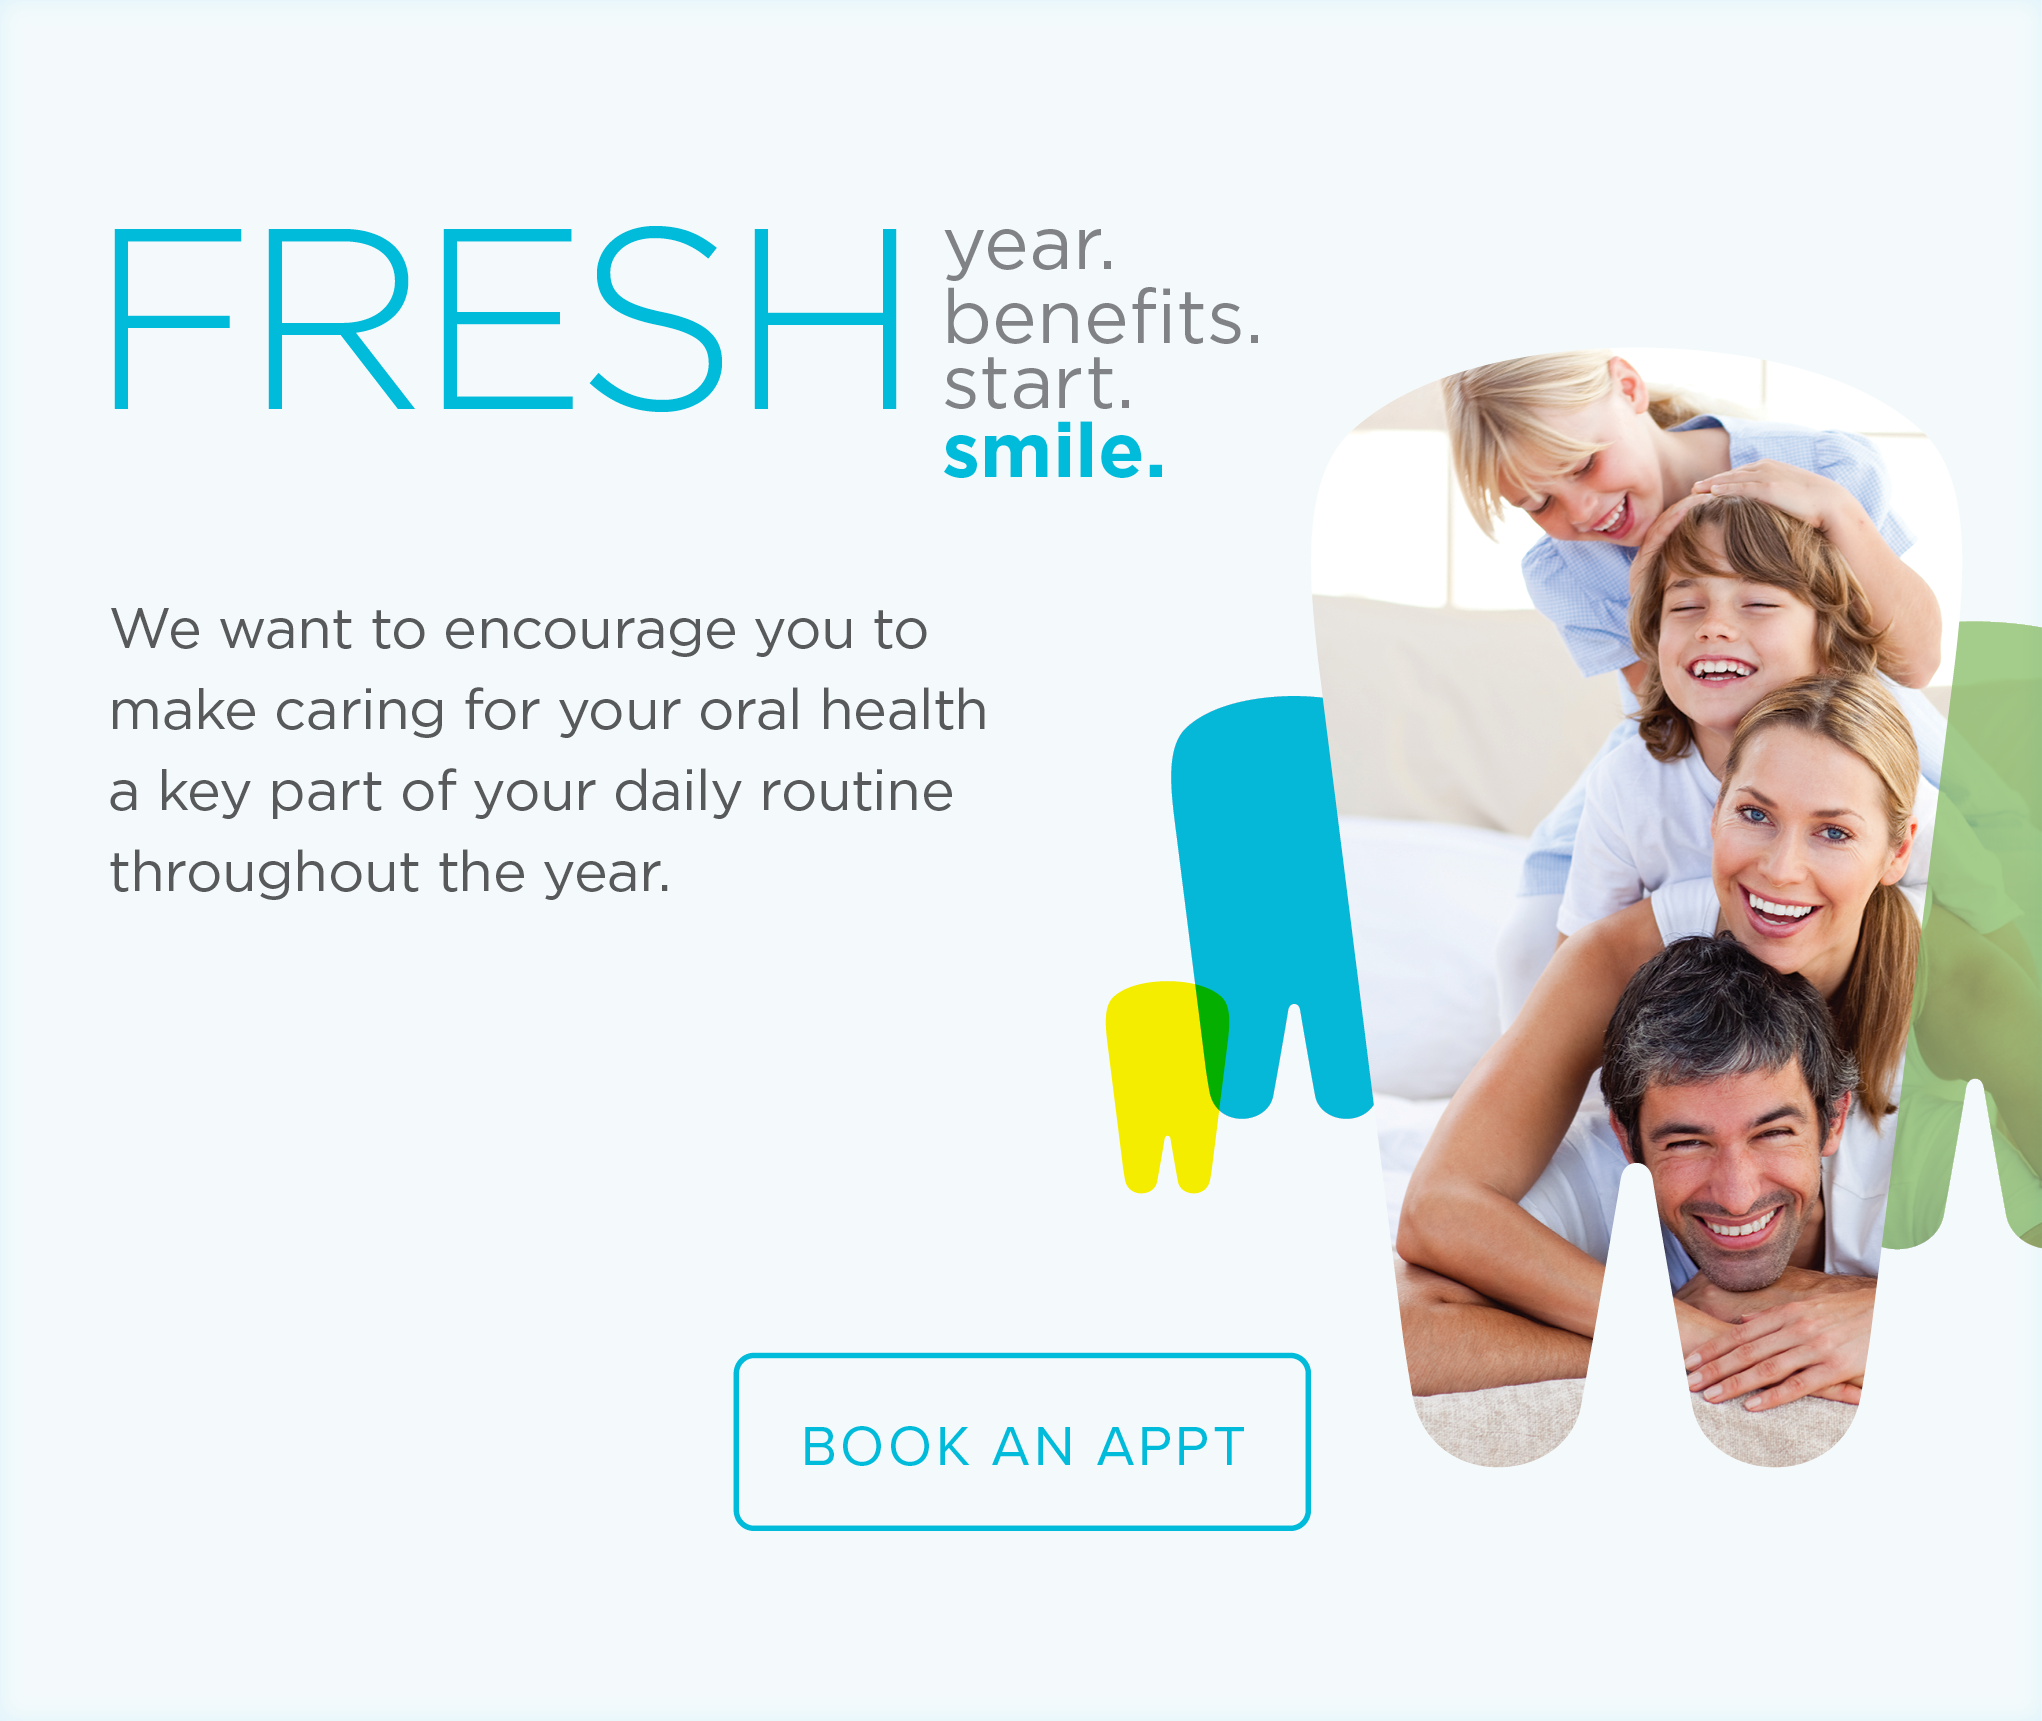 Sherwood Modern Dentistry and Orthodontics - Make the Most of Your Benefits